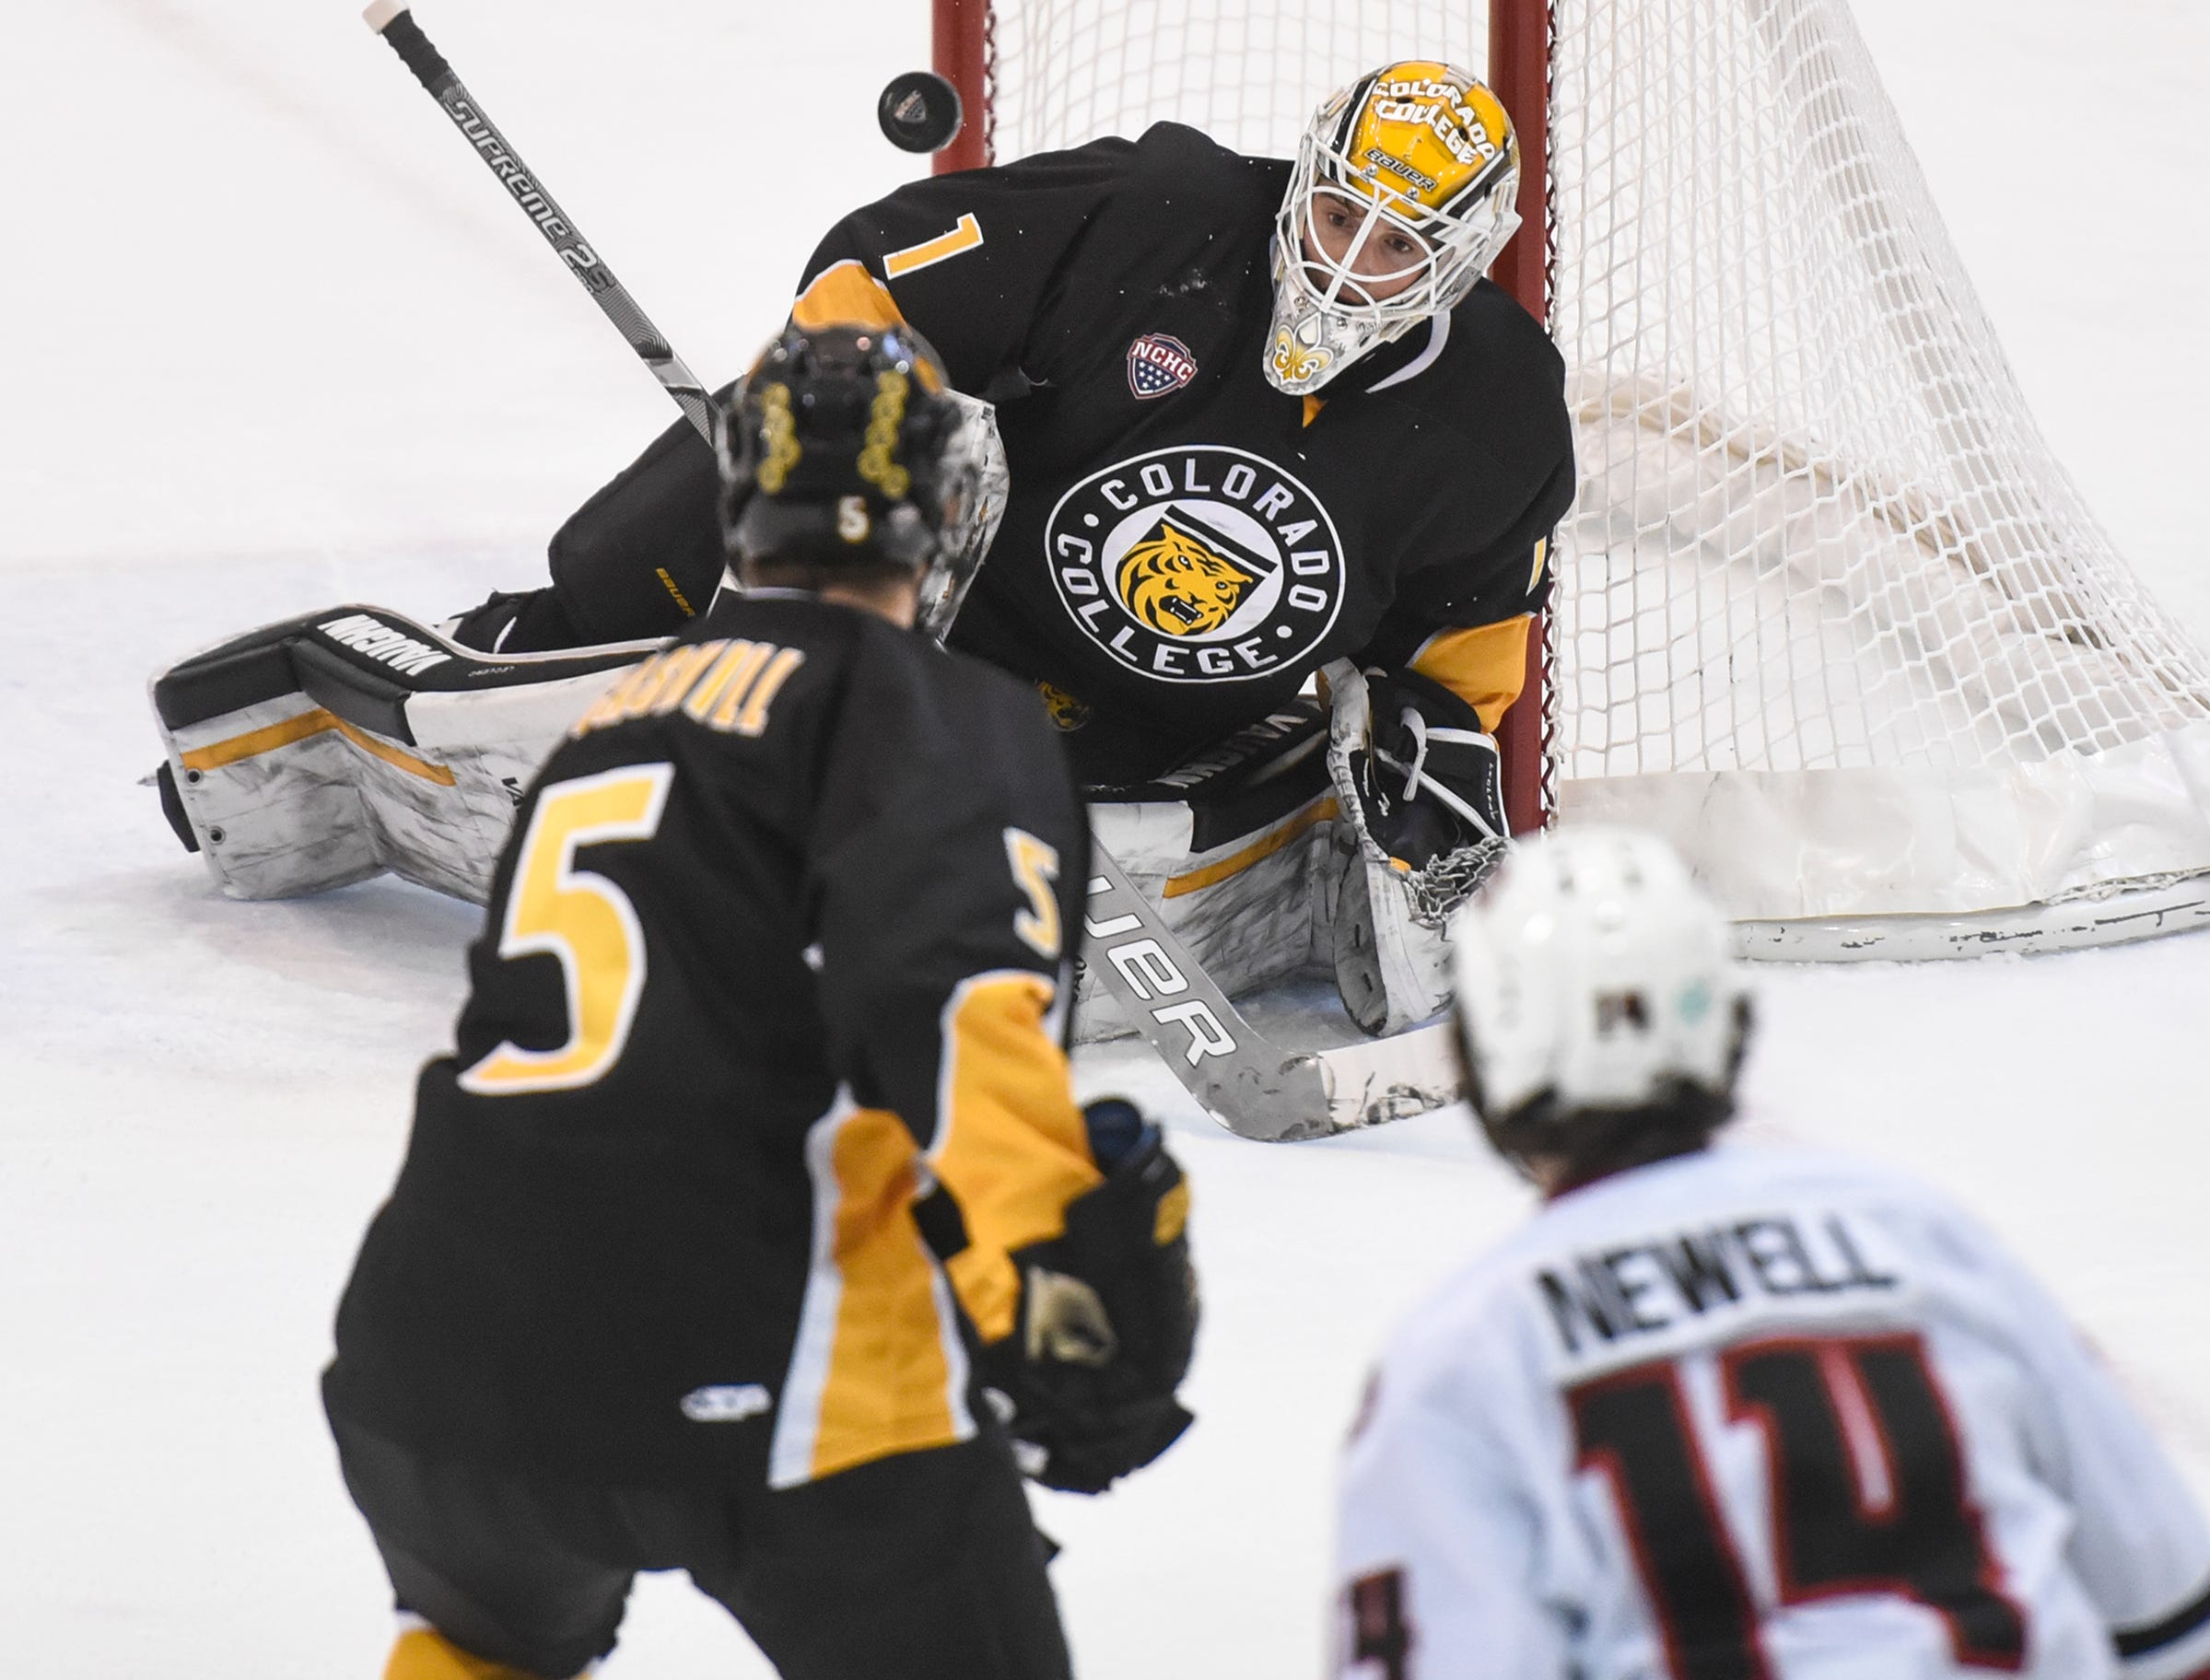 The puck bounces high over Colorado College goaltender Alex Leclerc during the first period of the Saturday, Feb. 9, game at the Herb Brooks National Hockey Center in St. Cloud.